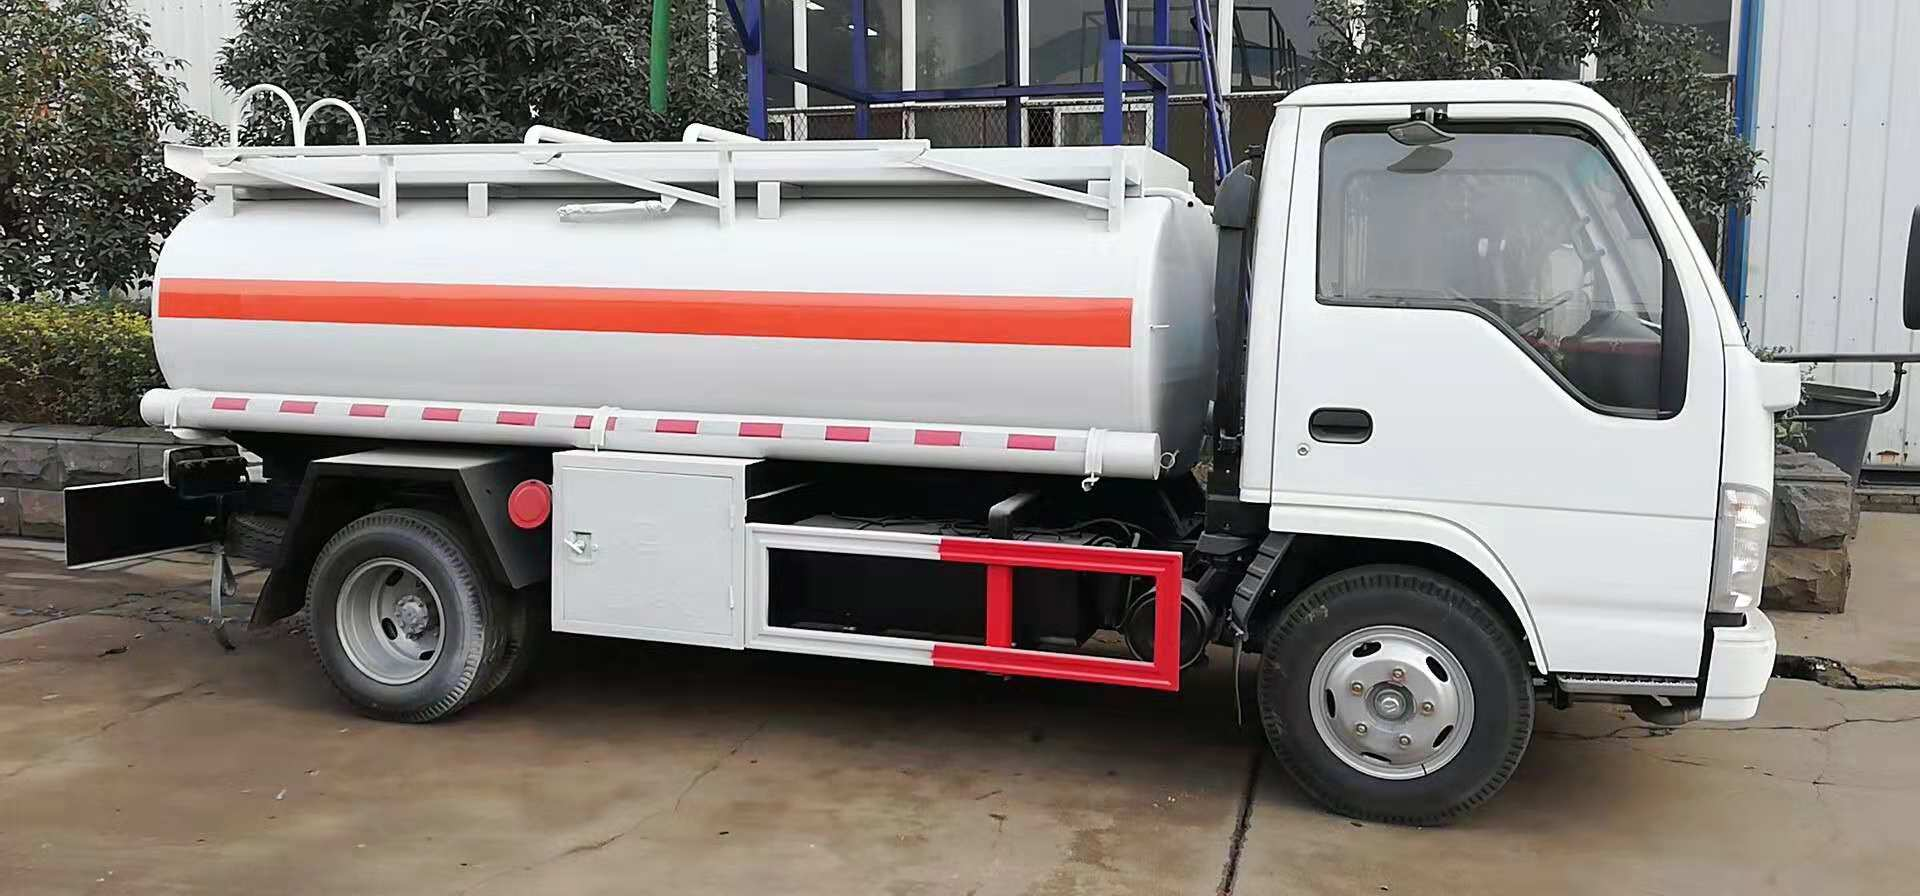 Japan Brand New Small 5000liters Fuel Refueling Tanker Truck